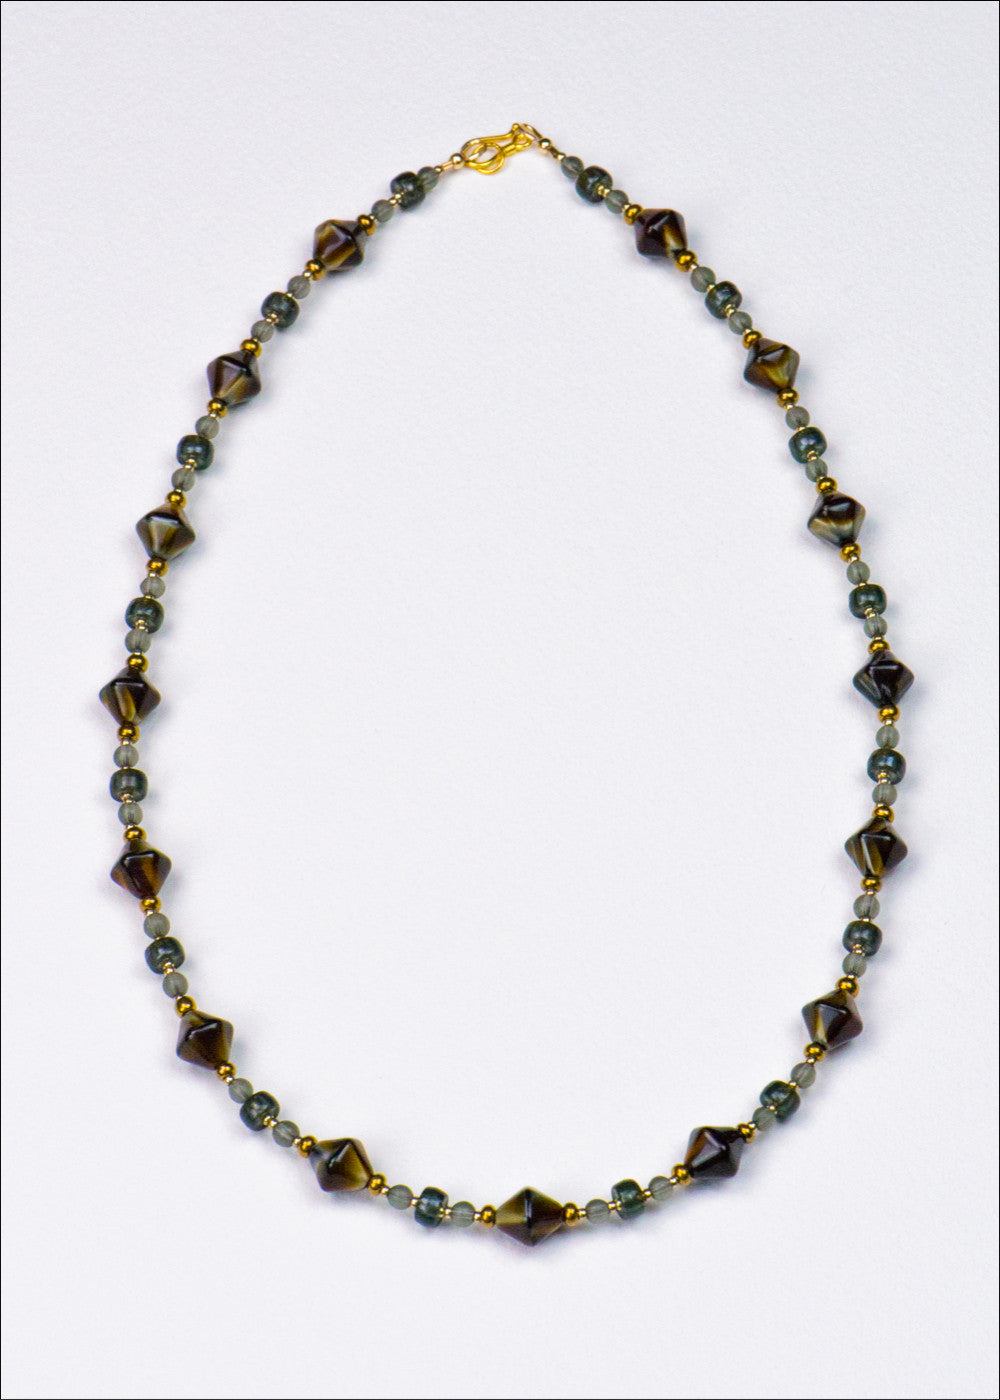 Caramel and Prussian Blue Glass Necklace